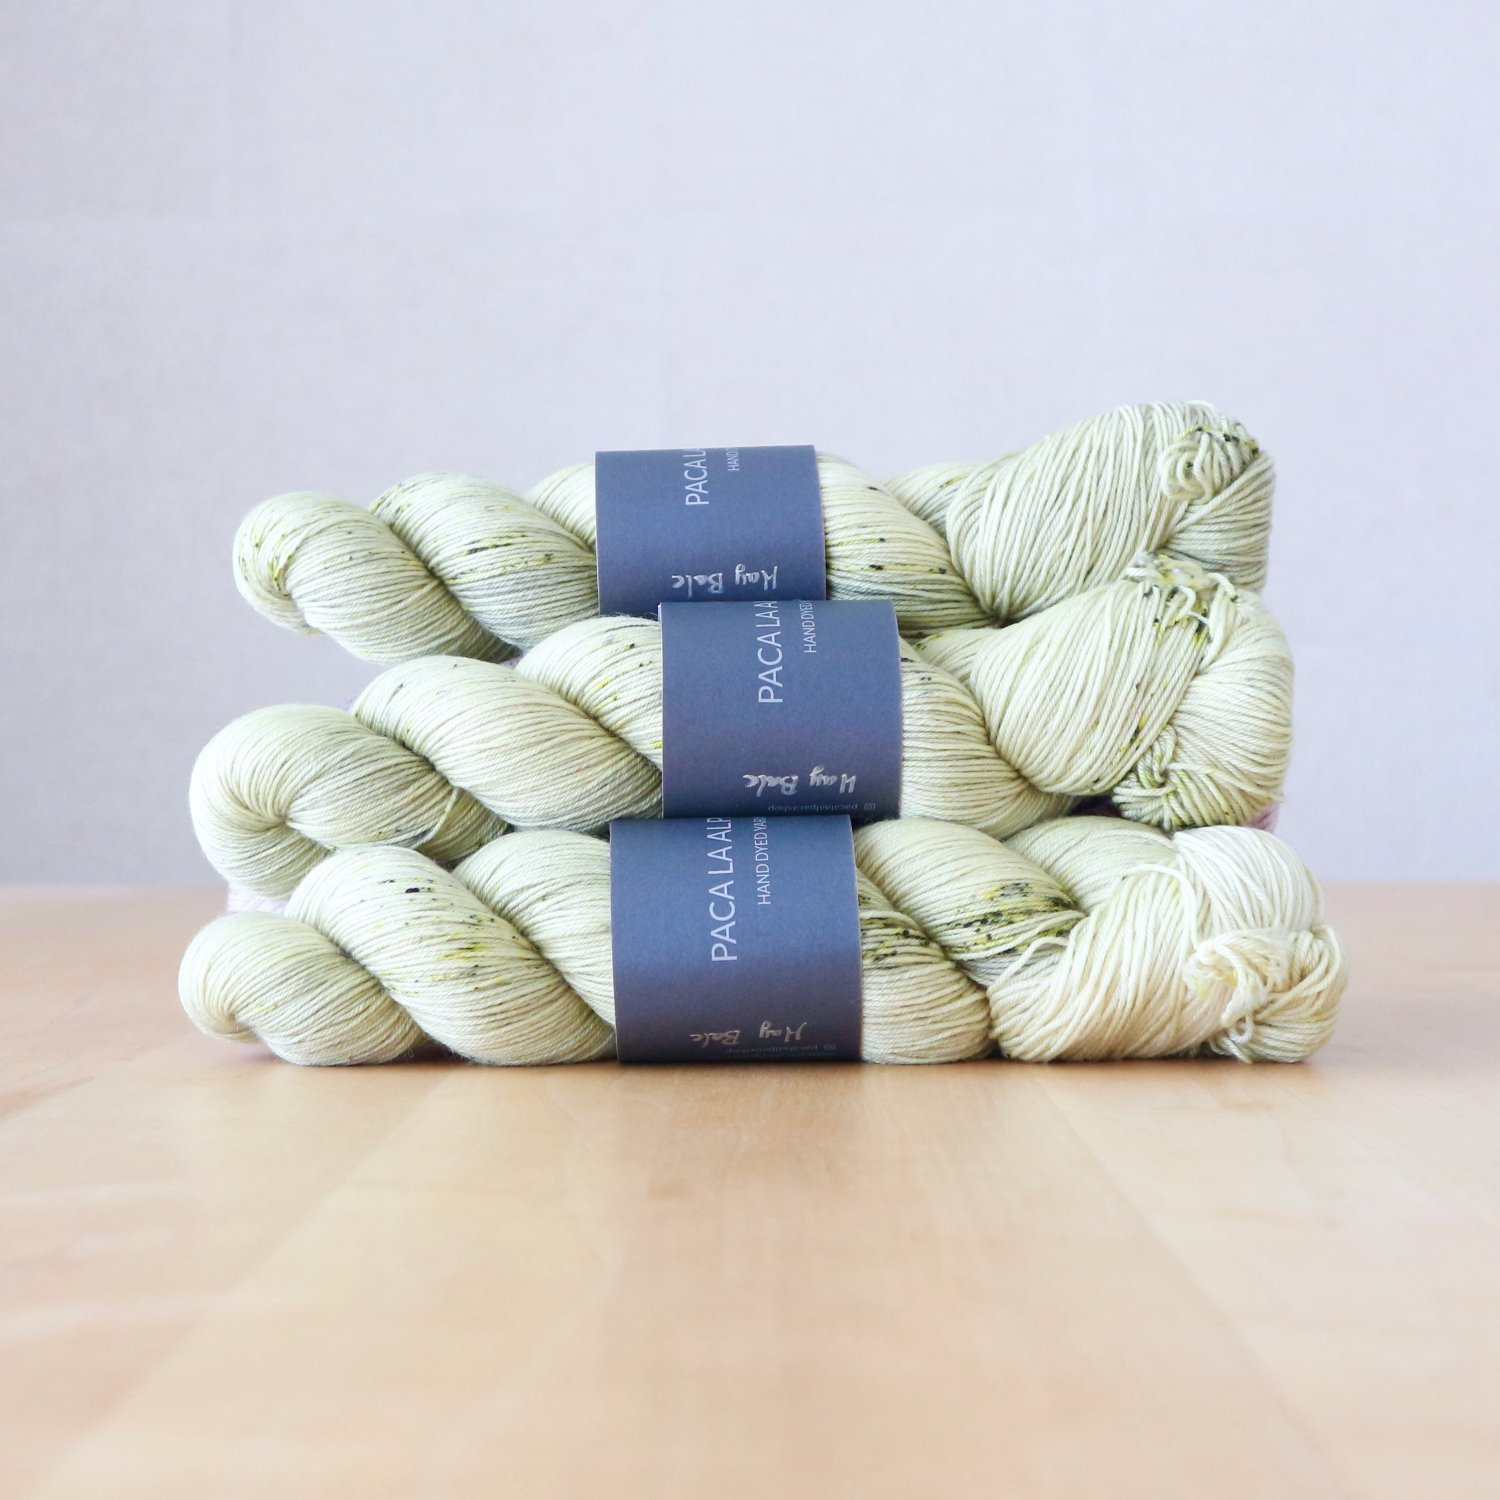 【Paca La Alpaca】<br>Superwash Merino Sock 4Ply<br>Hay Bale